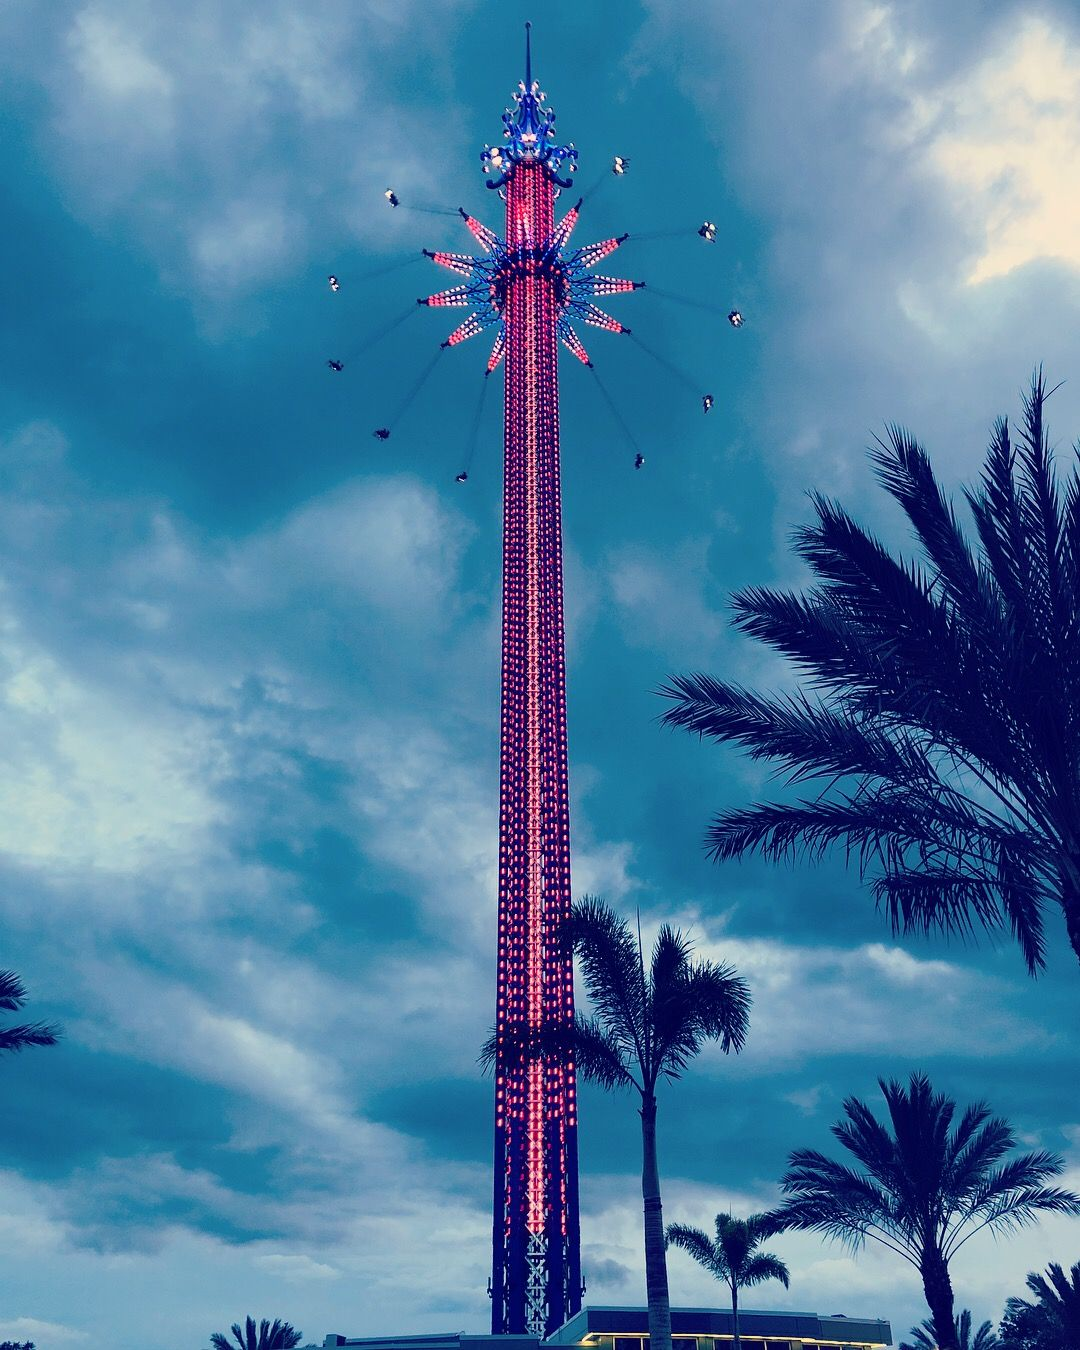 Starflyer Orlando Florida 🎆 Amazing Icon parking